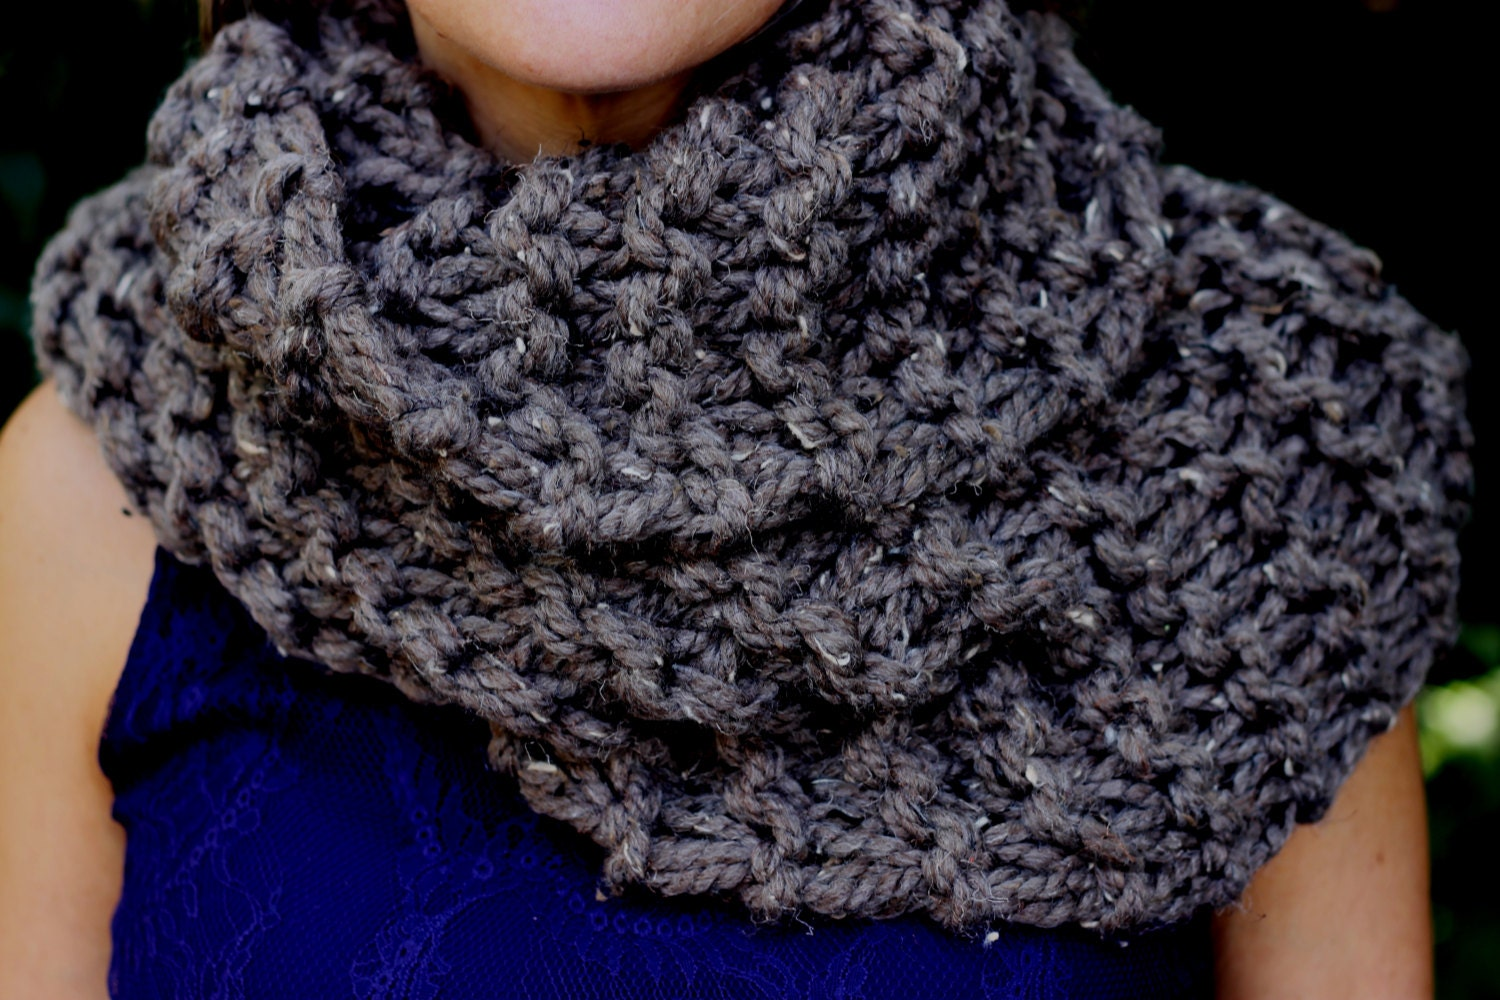 Sassenach inspired claires mobius cowl knitting pattern zoom bankloansurffo Image collections